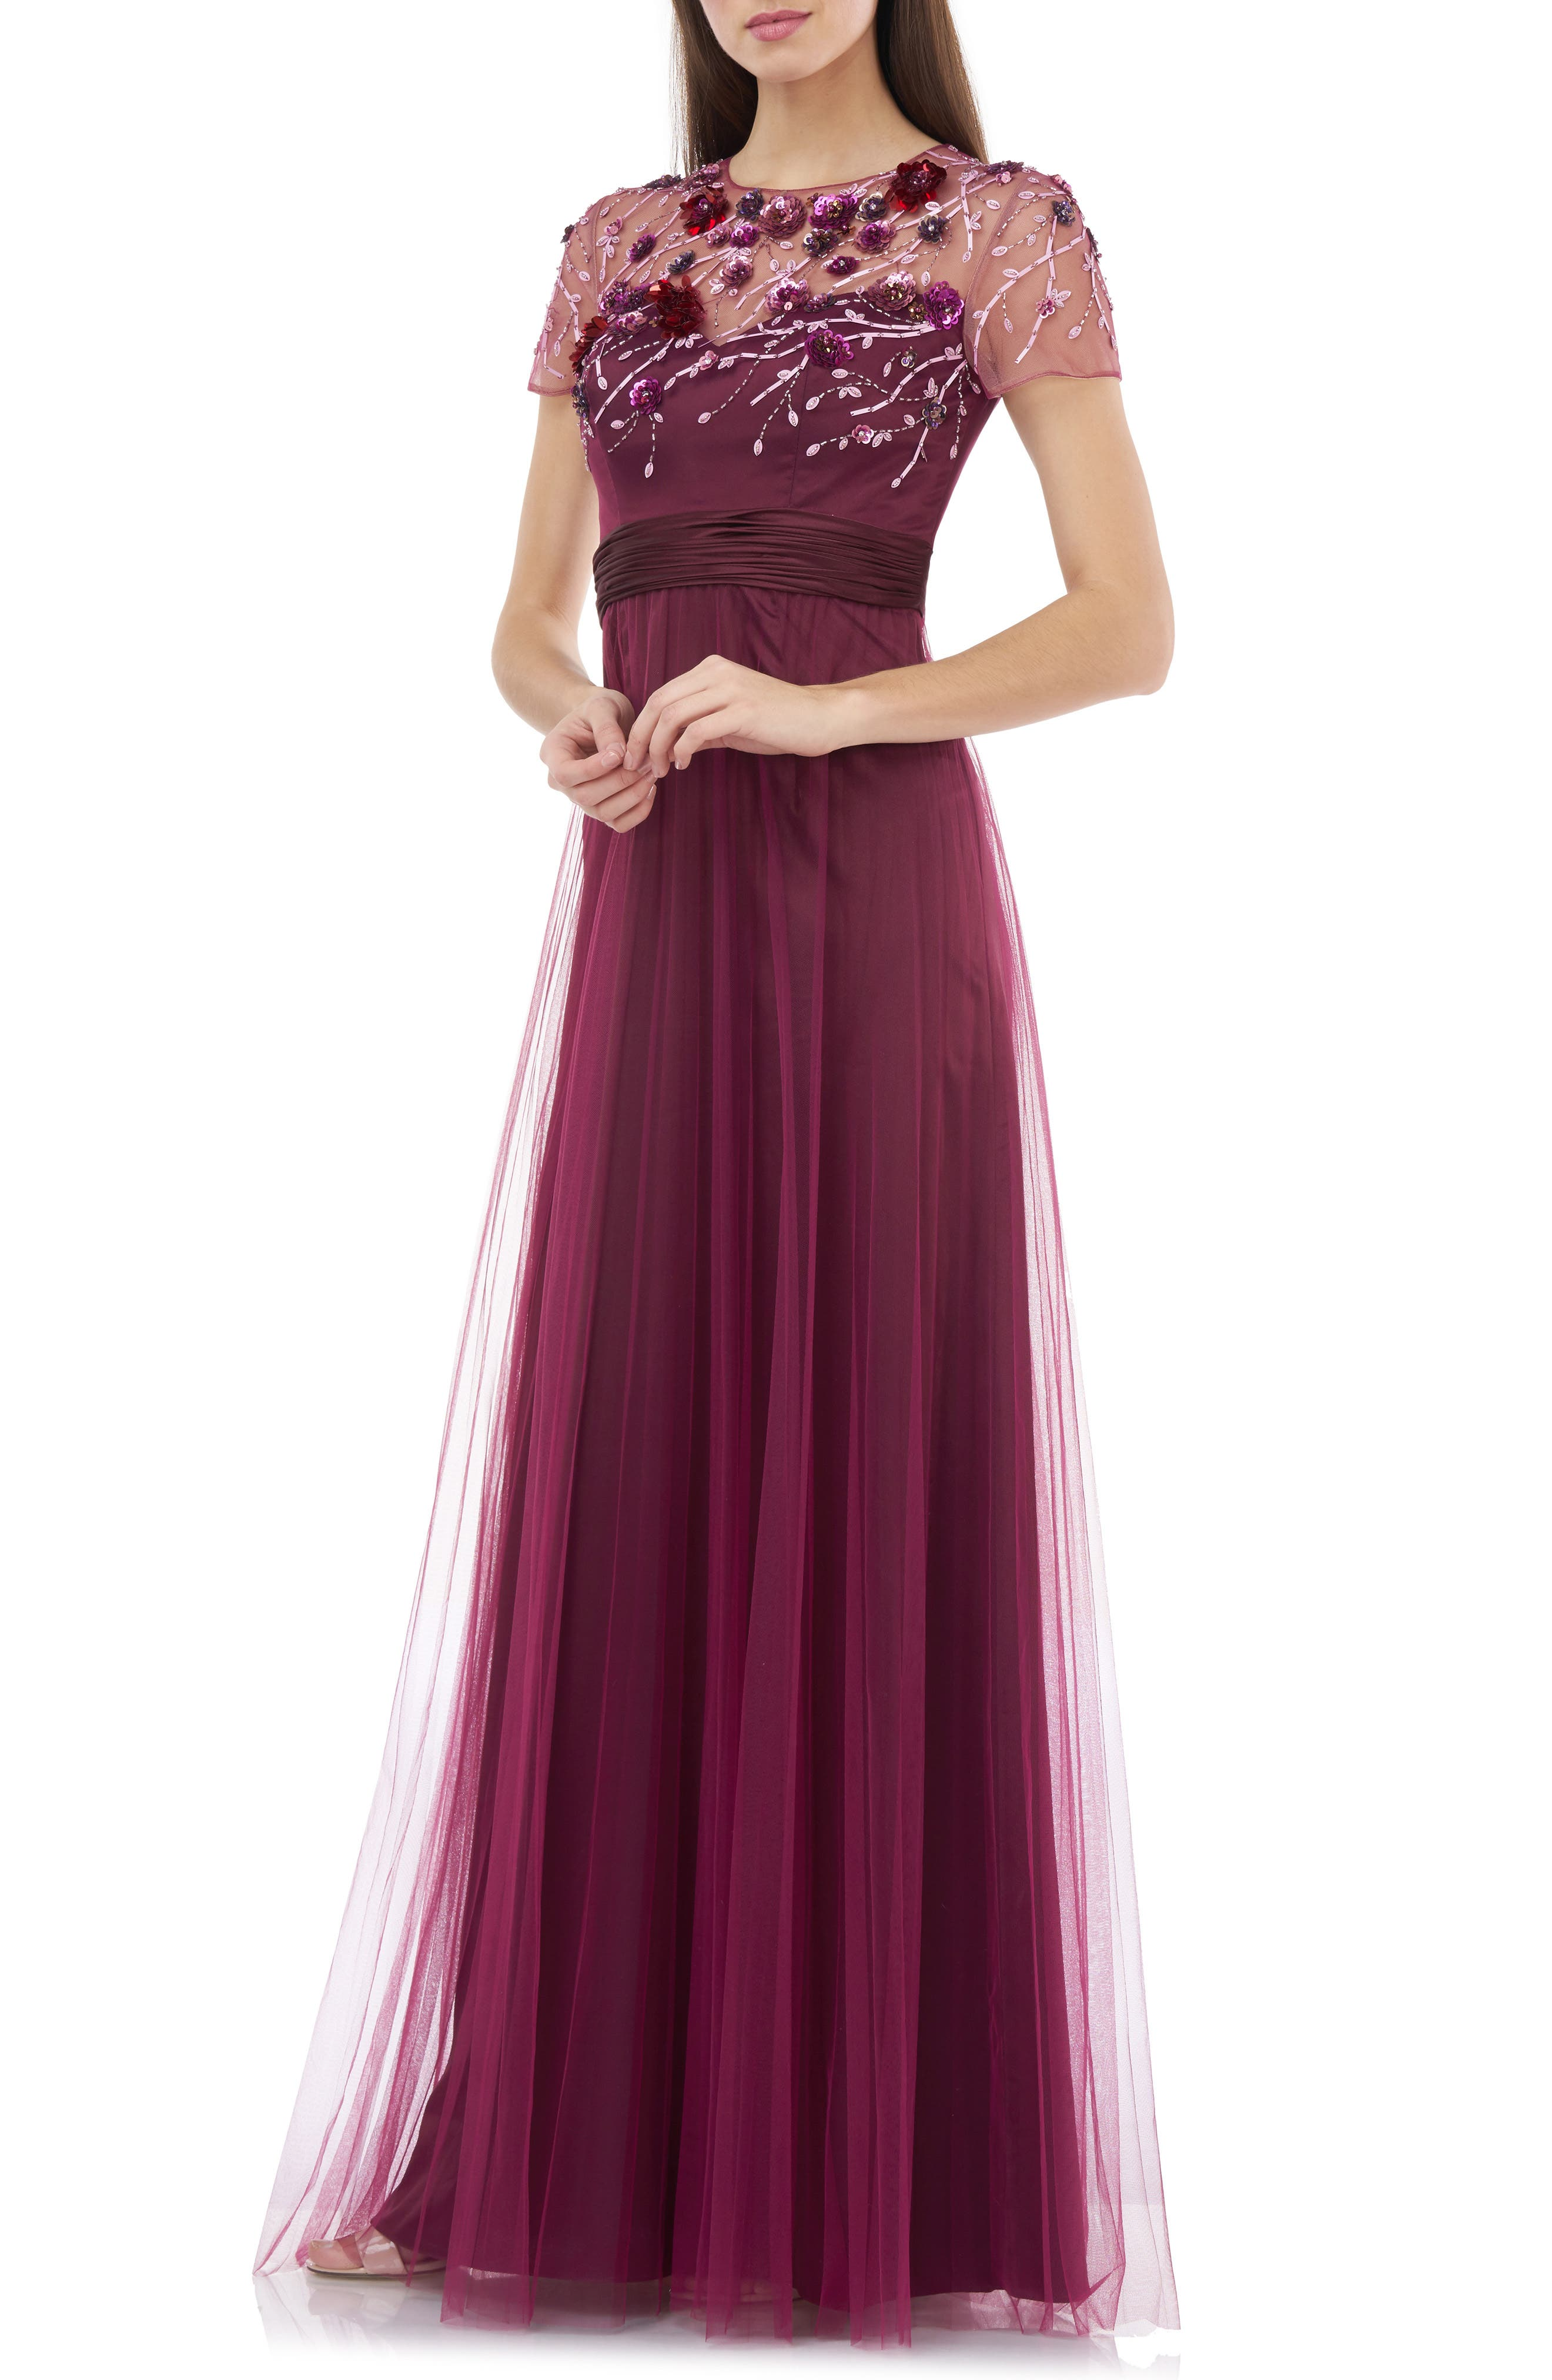 Edwardian Evening Gowns | Victorian Evening Dresses Womens Js Collections Floral 3D Embellished Bodice Gown $178.80 AT vintagedancer.com